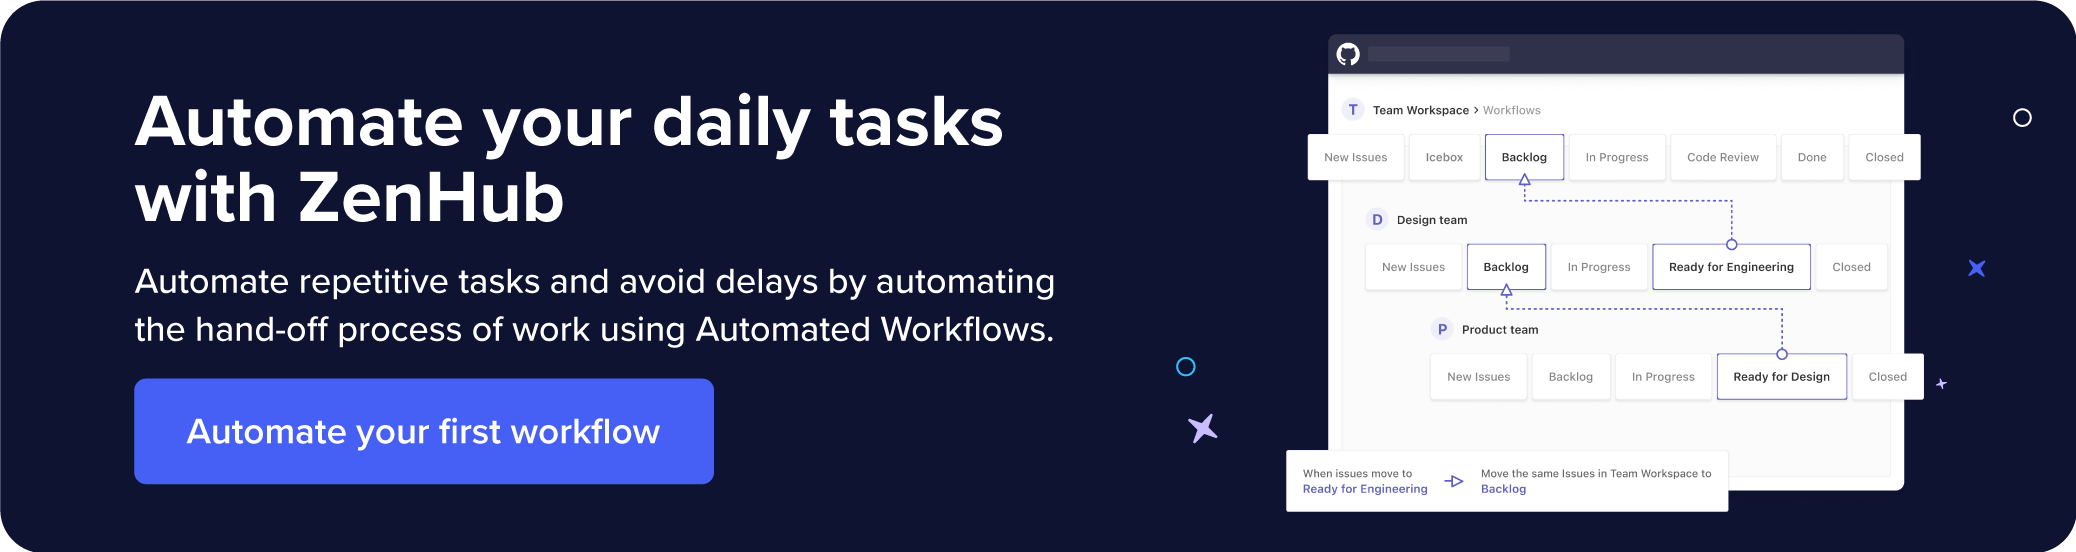 Recommends automating repetitive tasks and avoiding delays in the hand-off process of work through ZenHub.